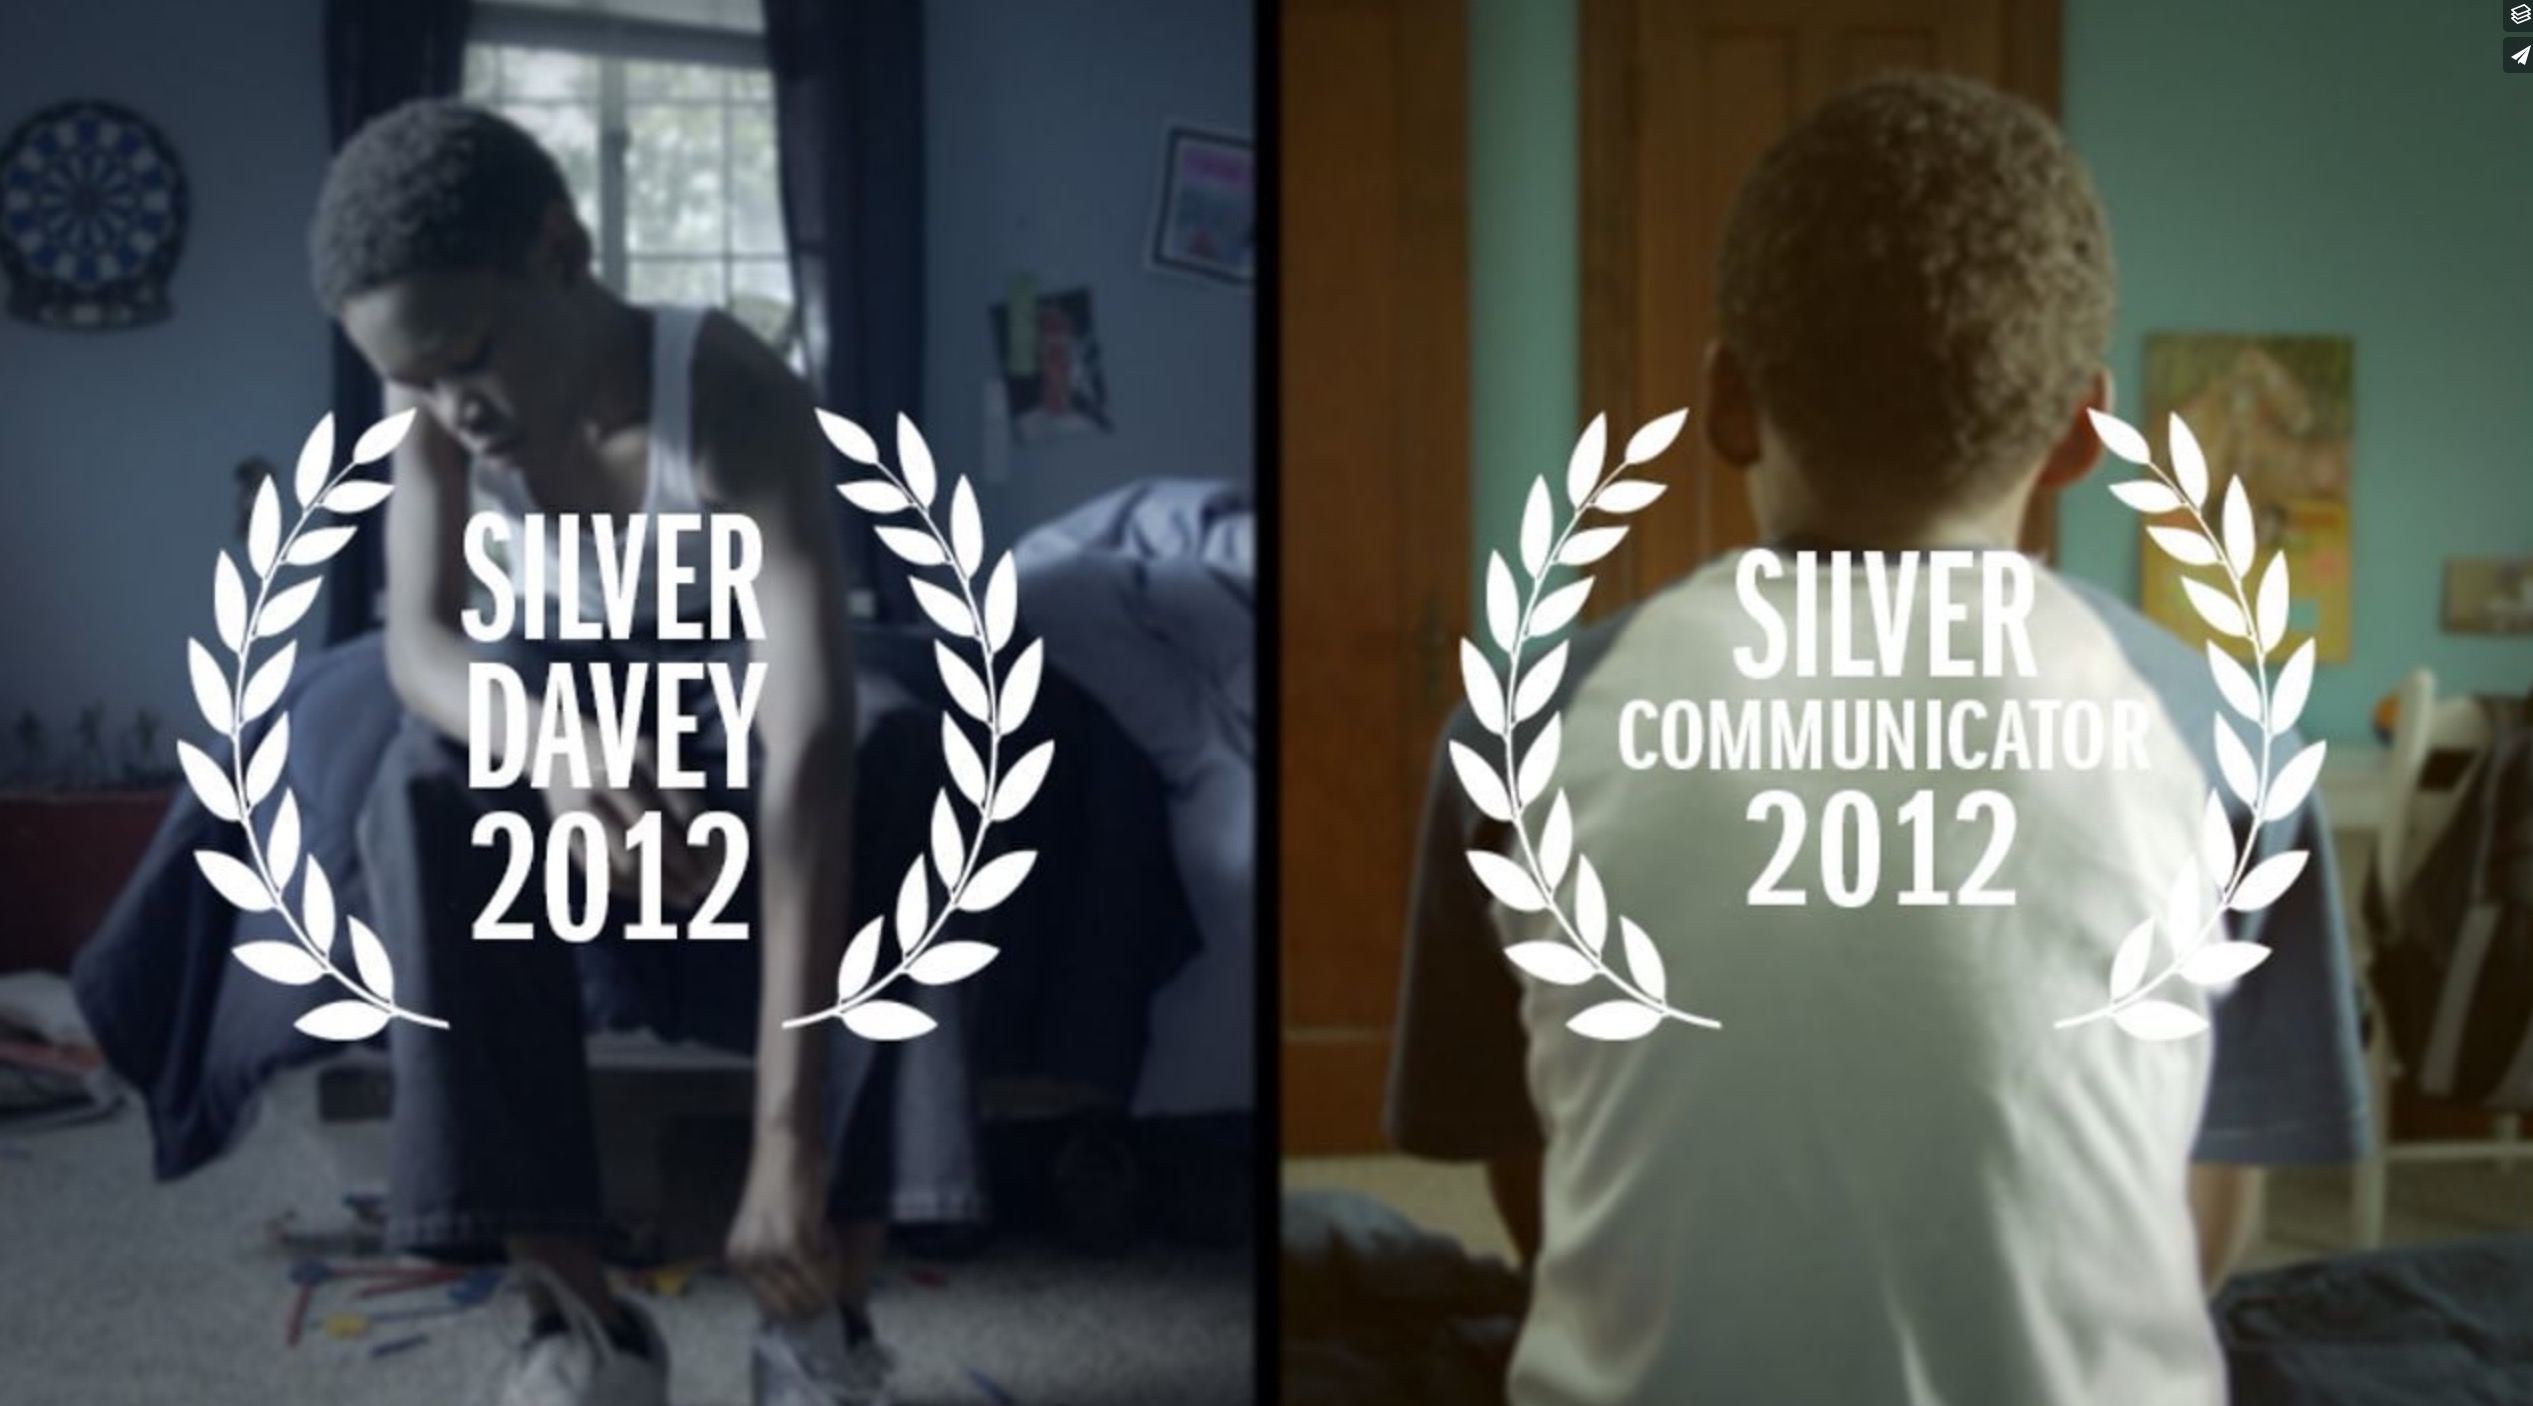 Silver Davey 2012 and Silver Communicator 2012 awards